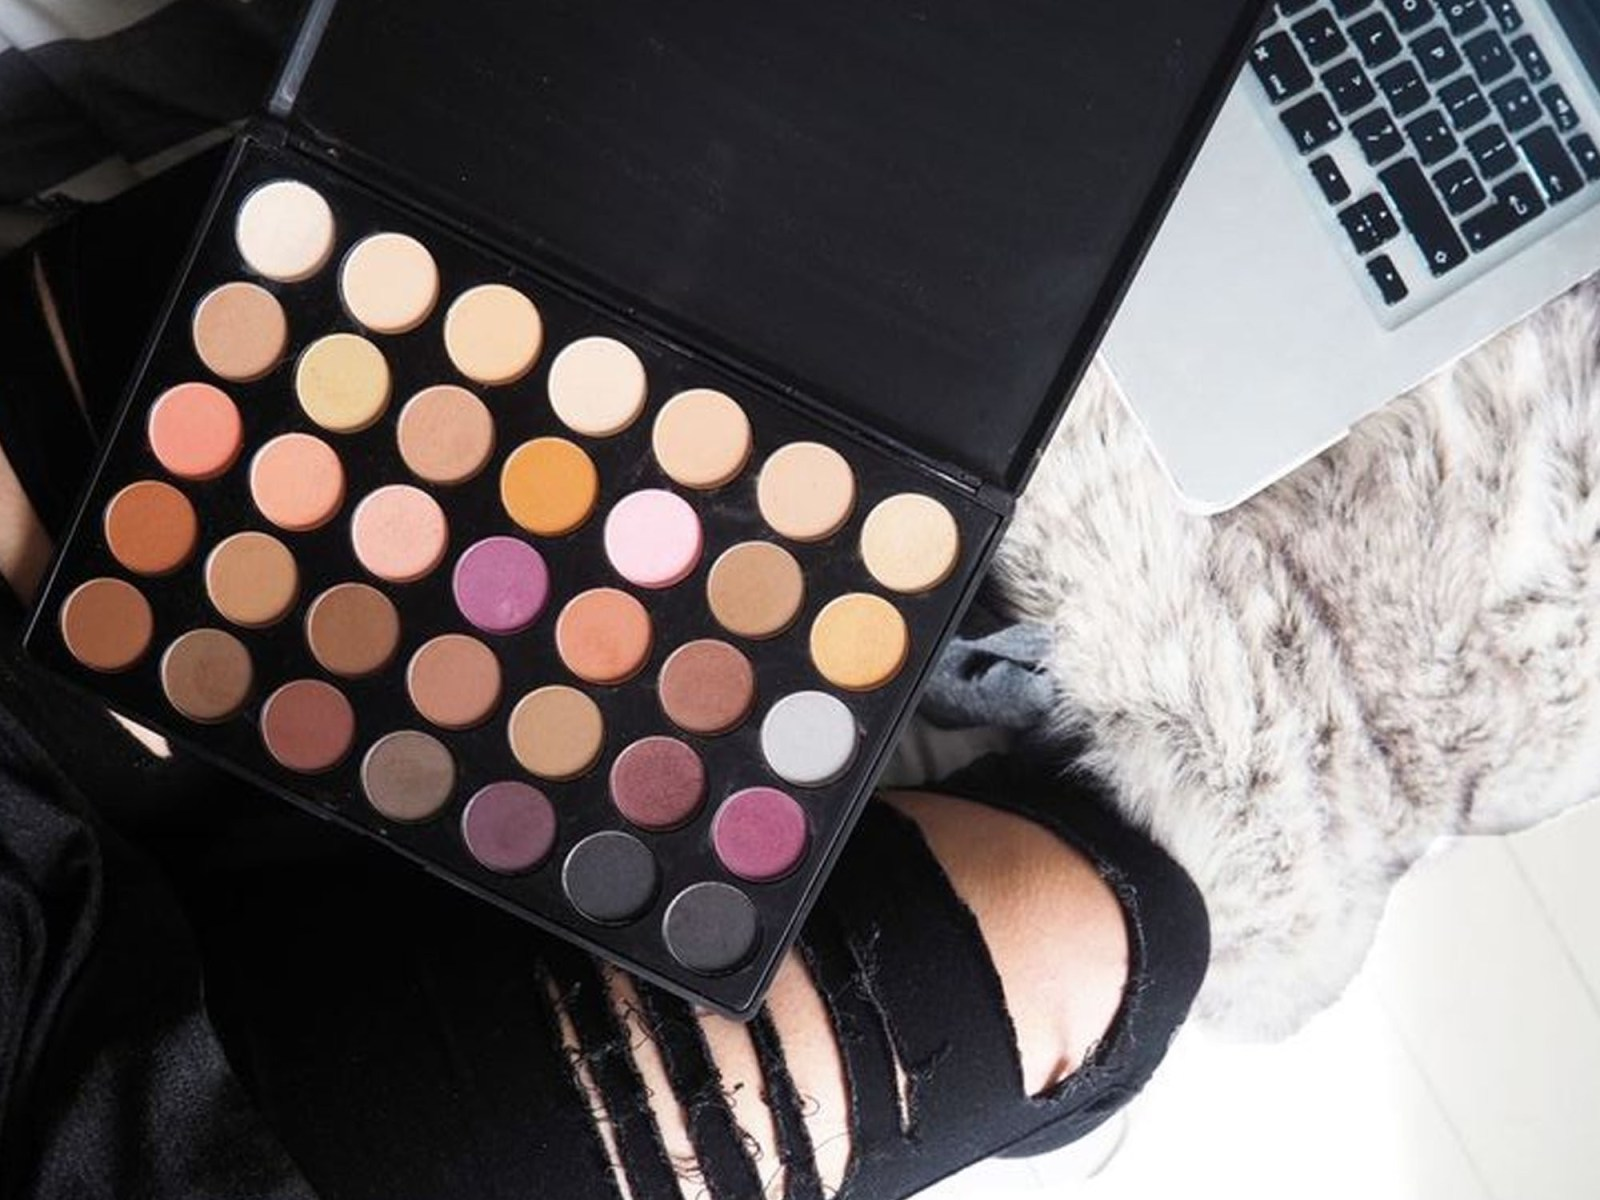 The Best Morphe Eyeshadow Palettes And Where To Buy Them Online Society19 Uk Morphe x james charles 39 colors eye shadow mini palette glitter makeup hot gift. the best morphe eyeshadow palettes and